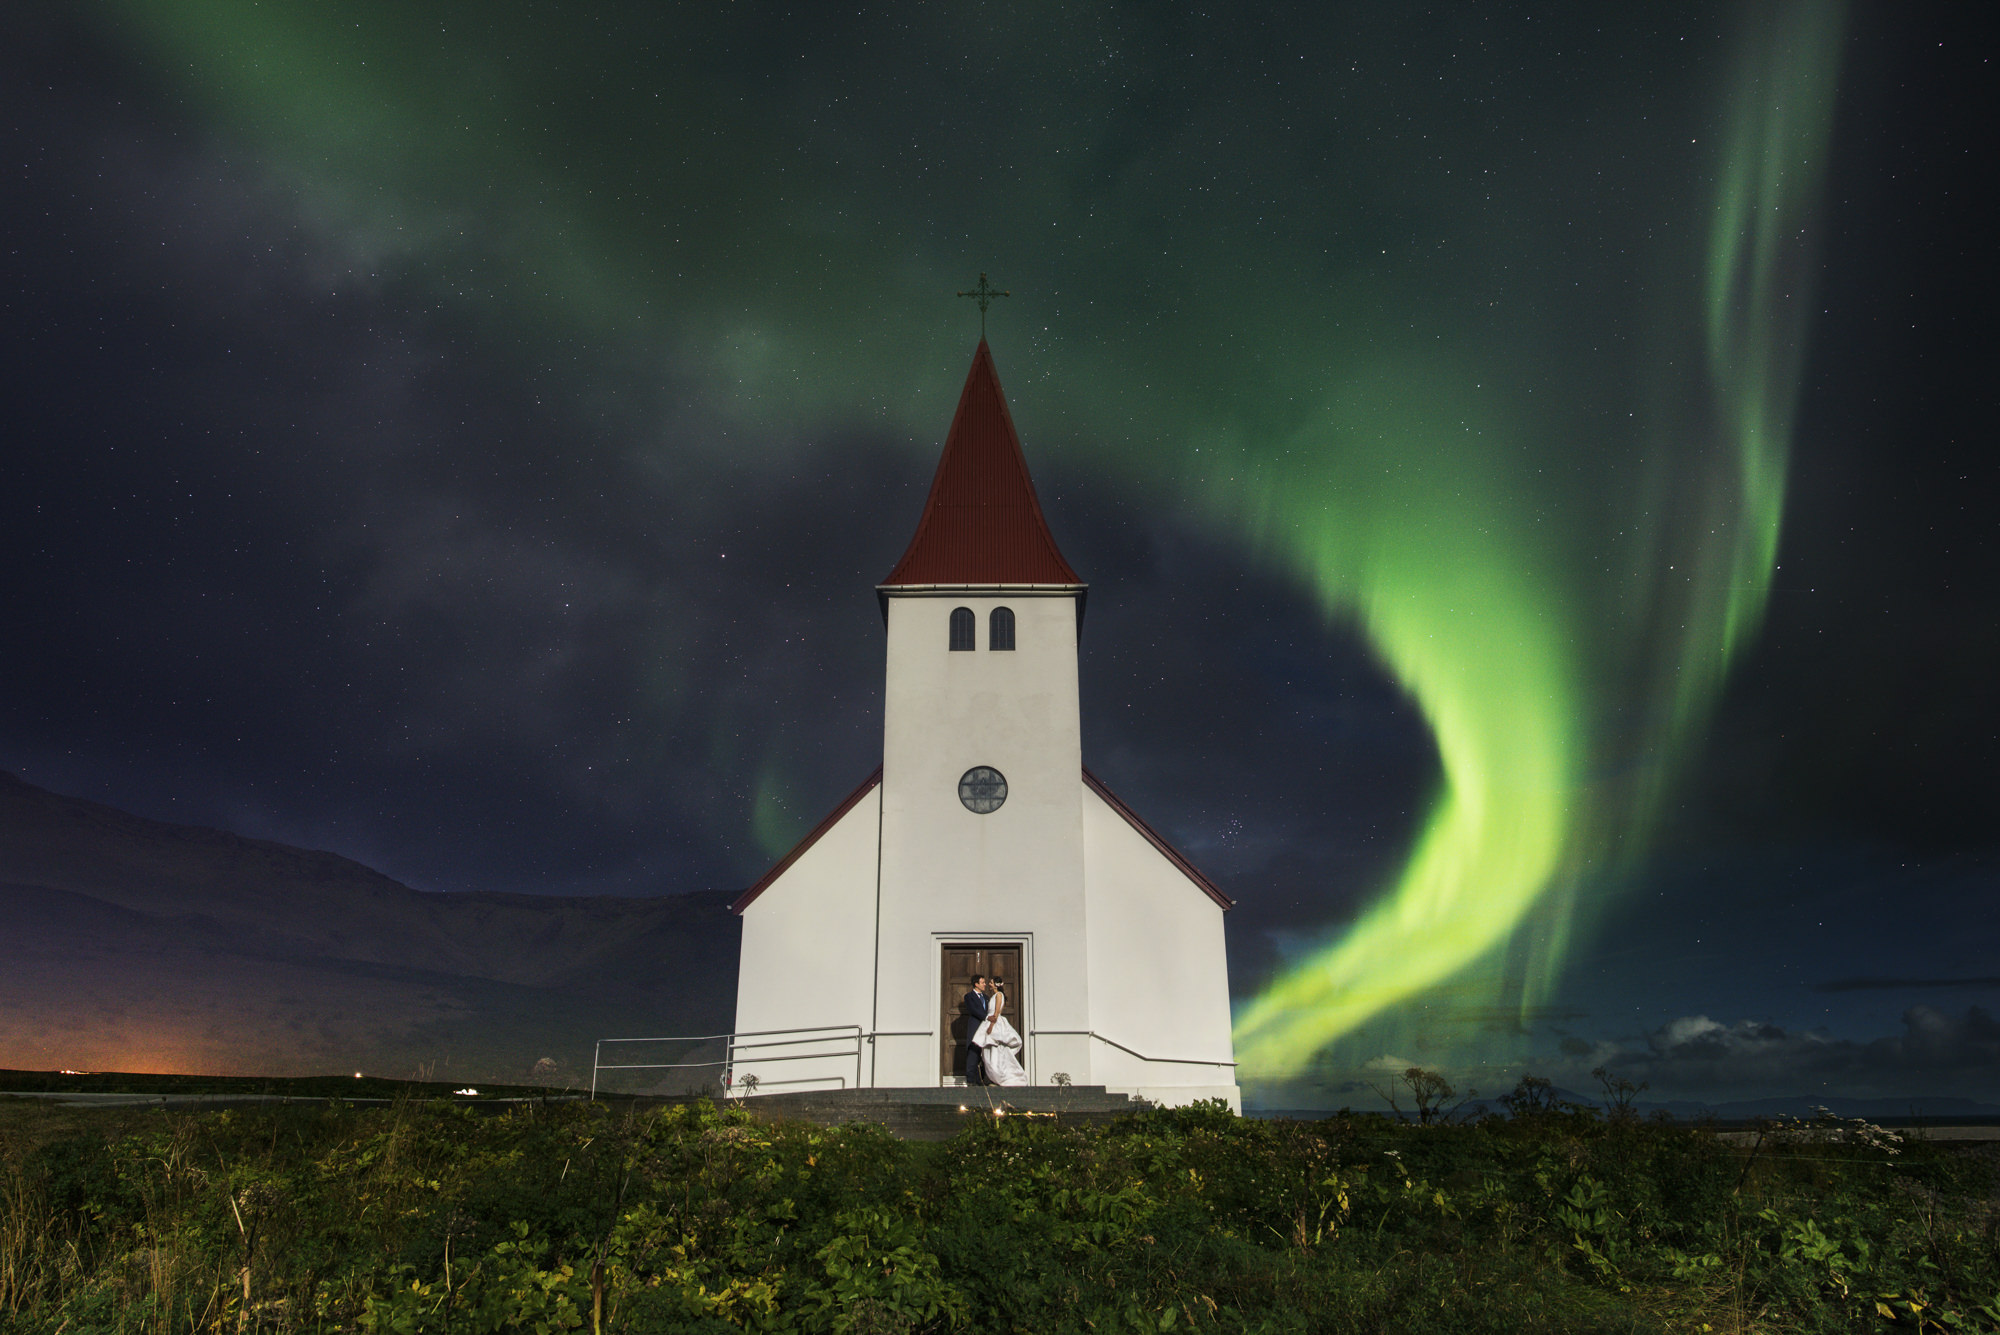 couple-at-chapel-with-northern-lights-worlds-best-wedding-photos-look-fotographica-la-wedding-photographers